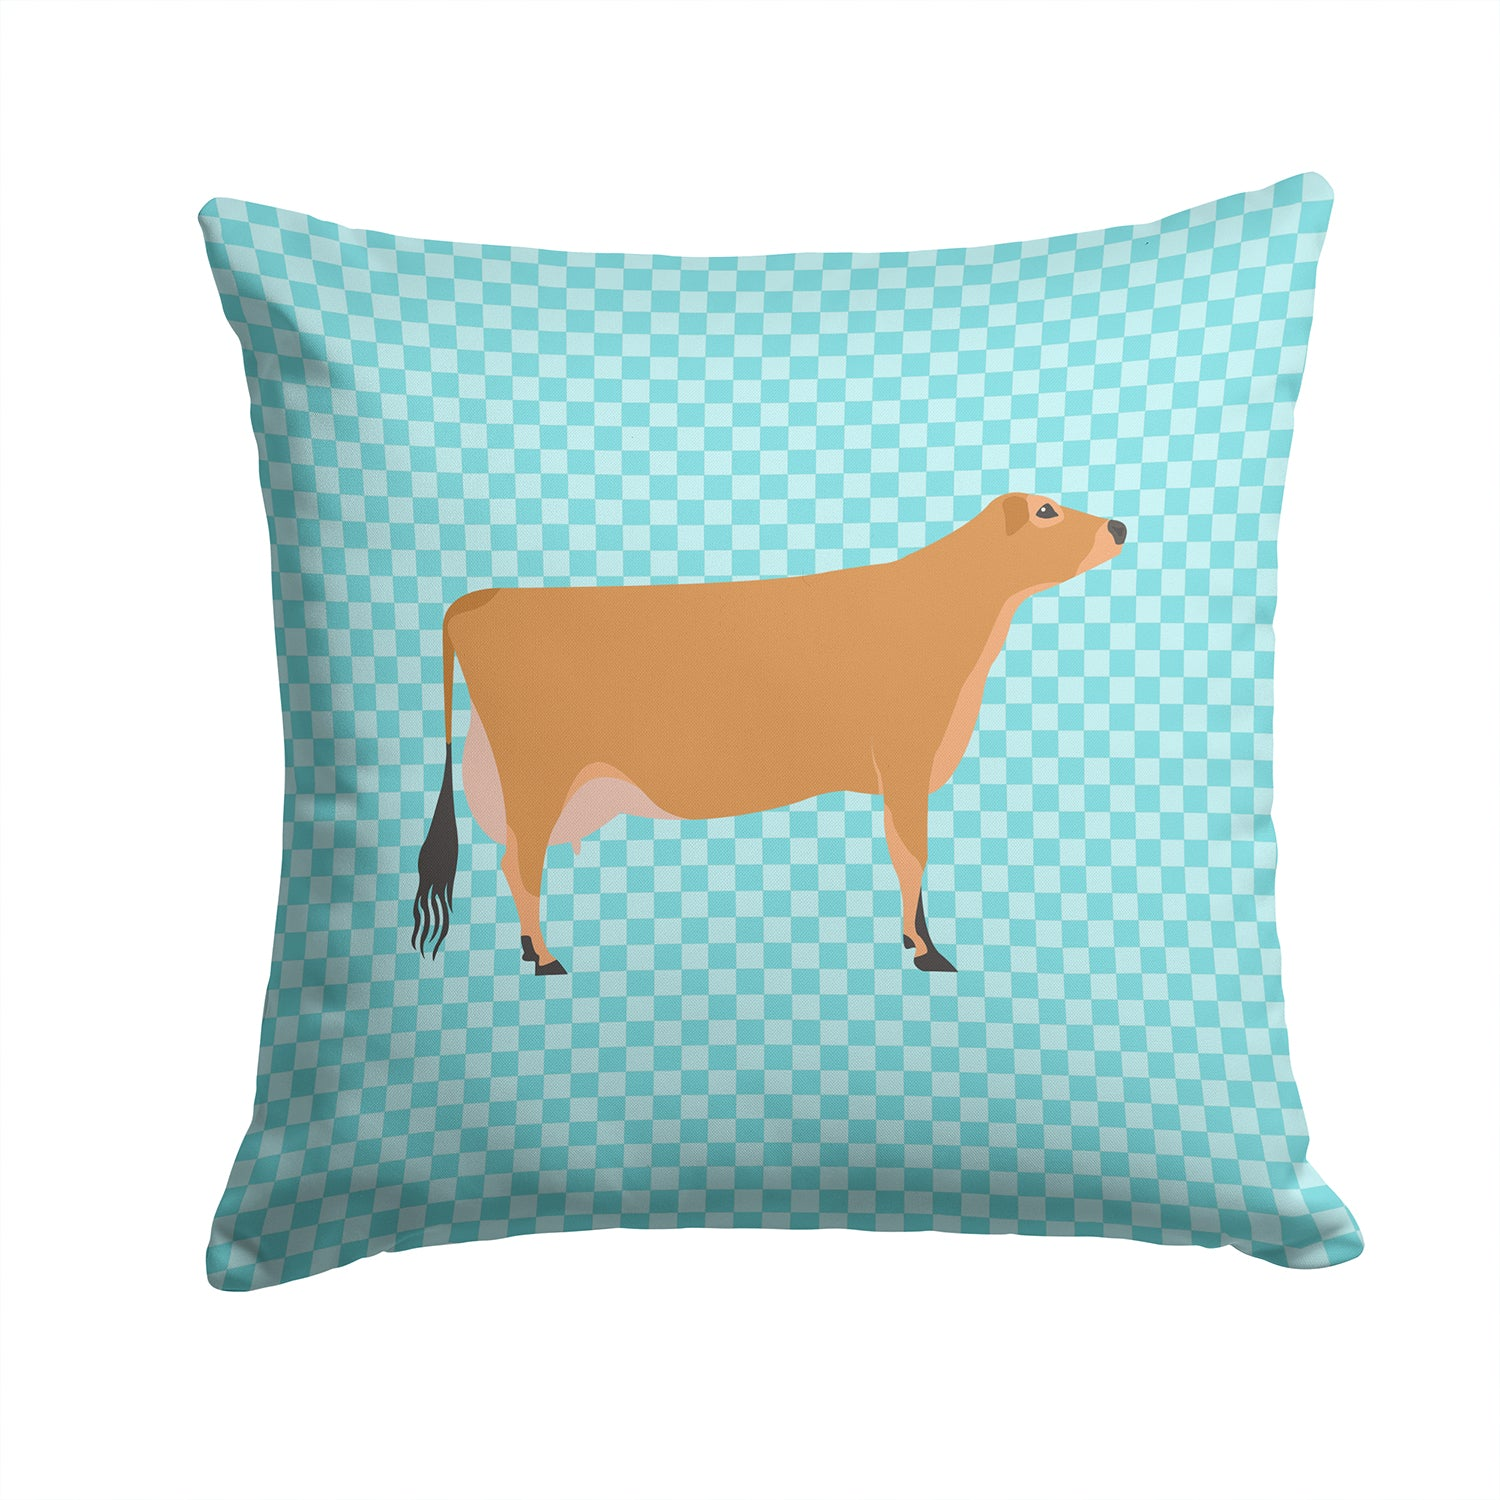 Jersey Cow Blue Check Fabric Decorative Pillow BB8003PW1414 by Caroline's Treasures